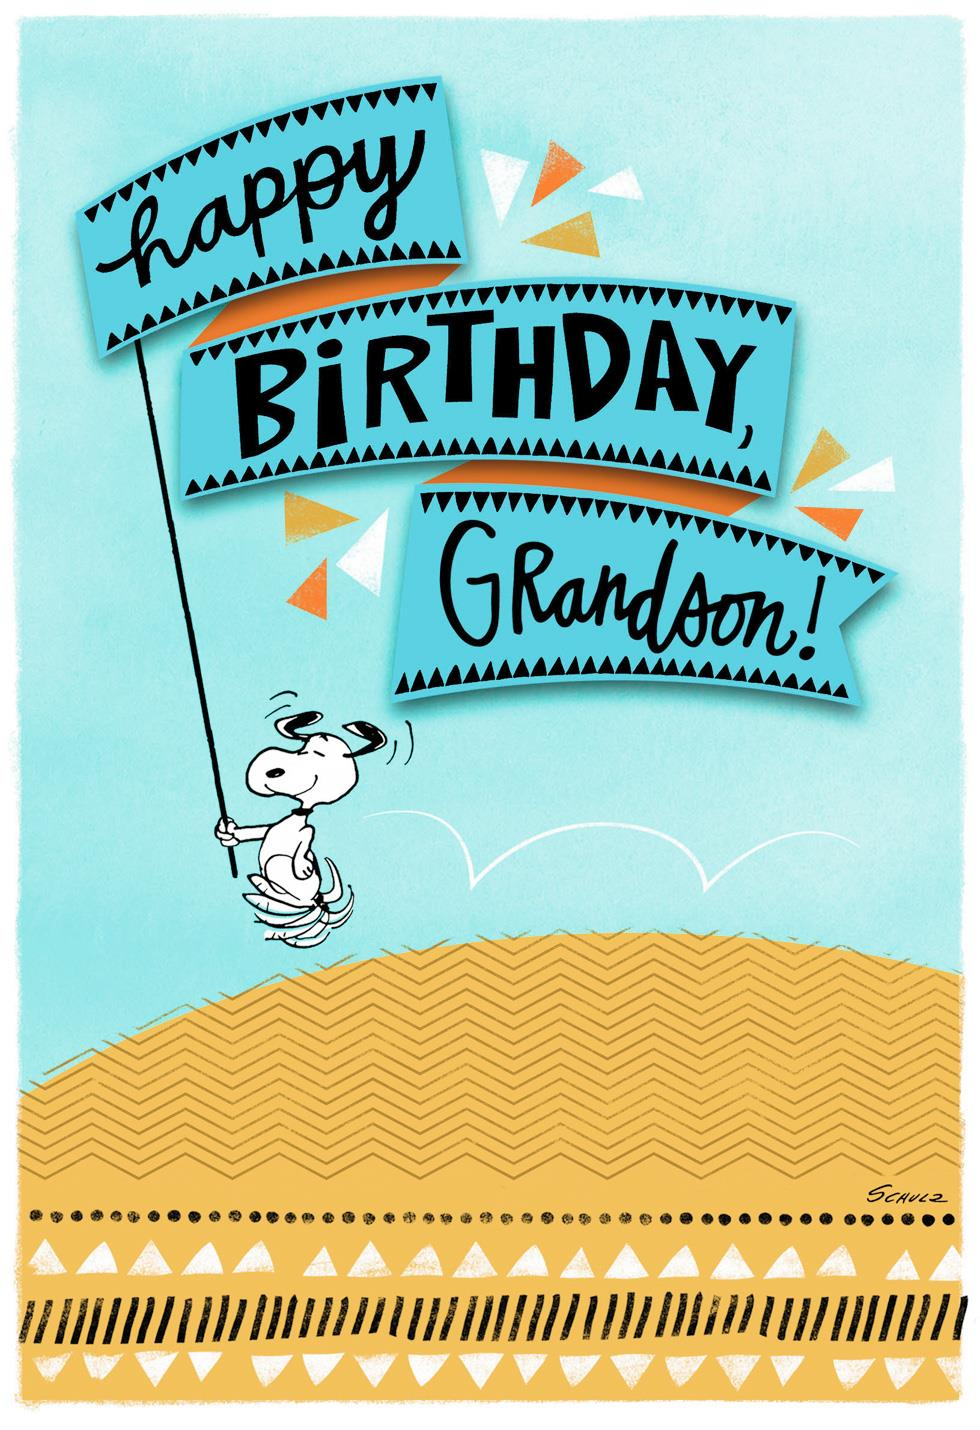 PeanutsR Snoopy All Happy Birthday Card For Grandson